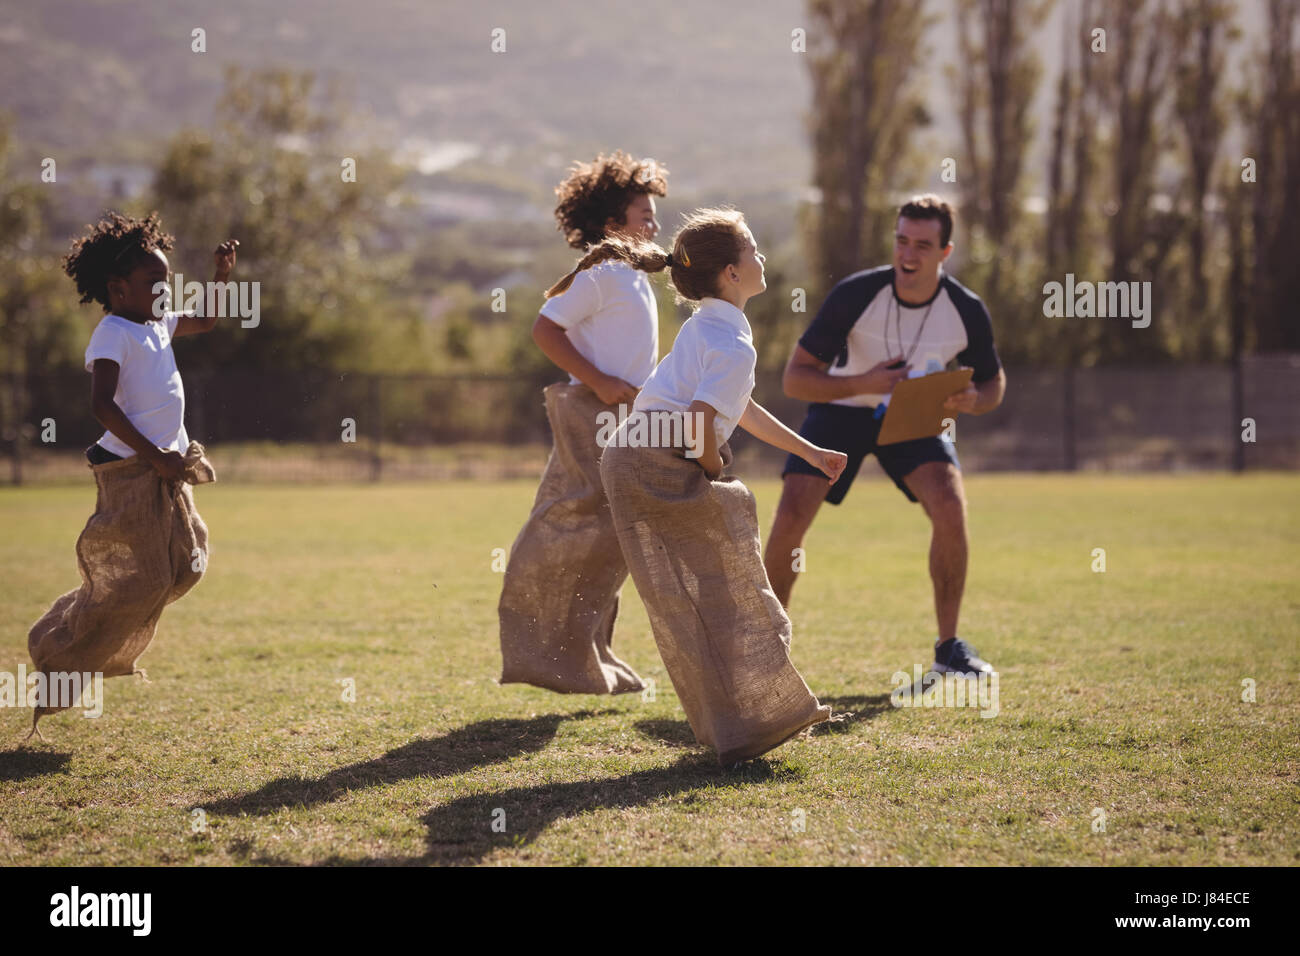 Coach cheering schoolgirls during sack race in park on a sunny day - Stock Image